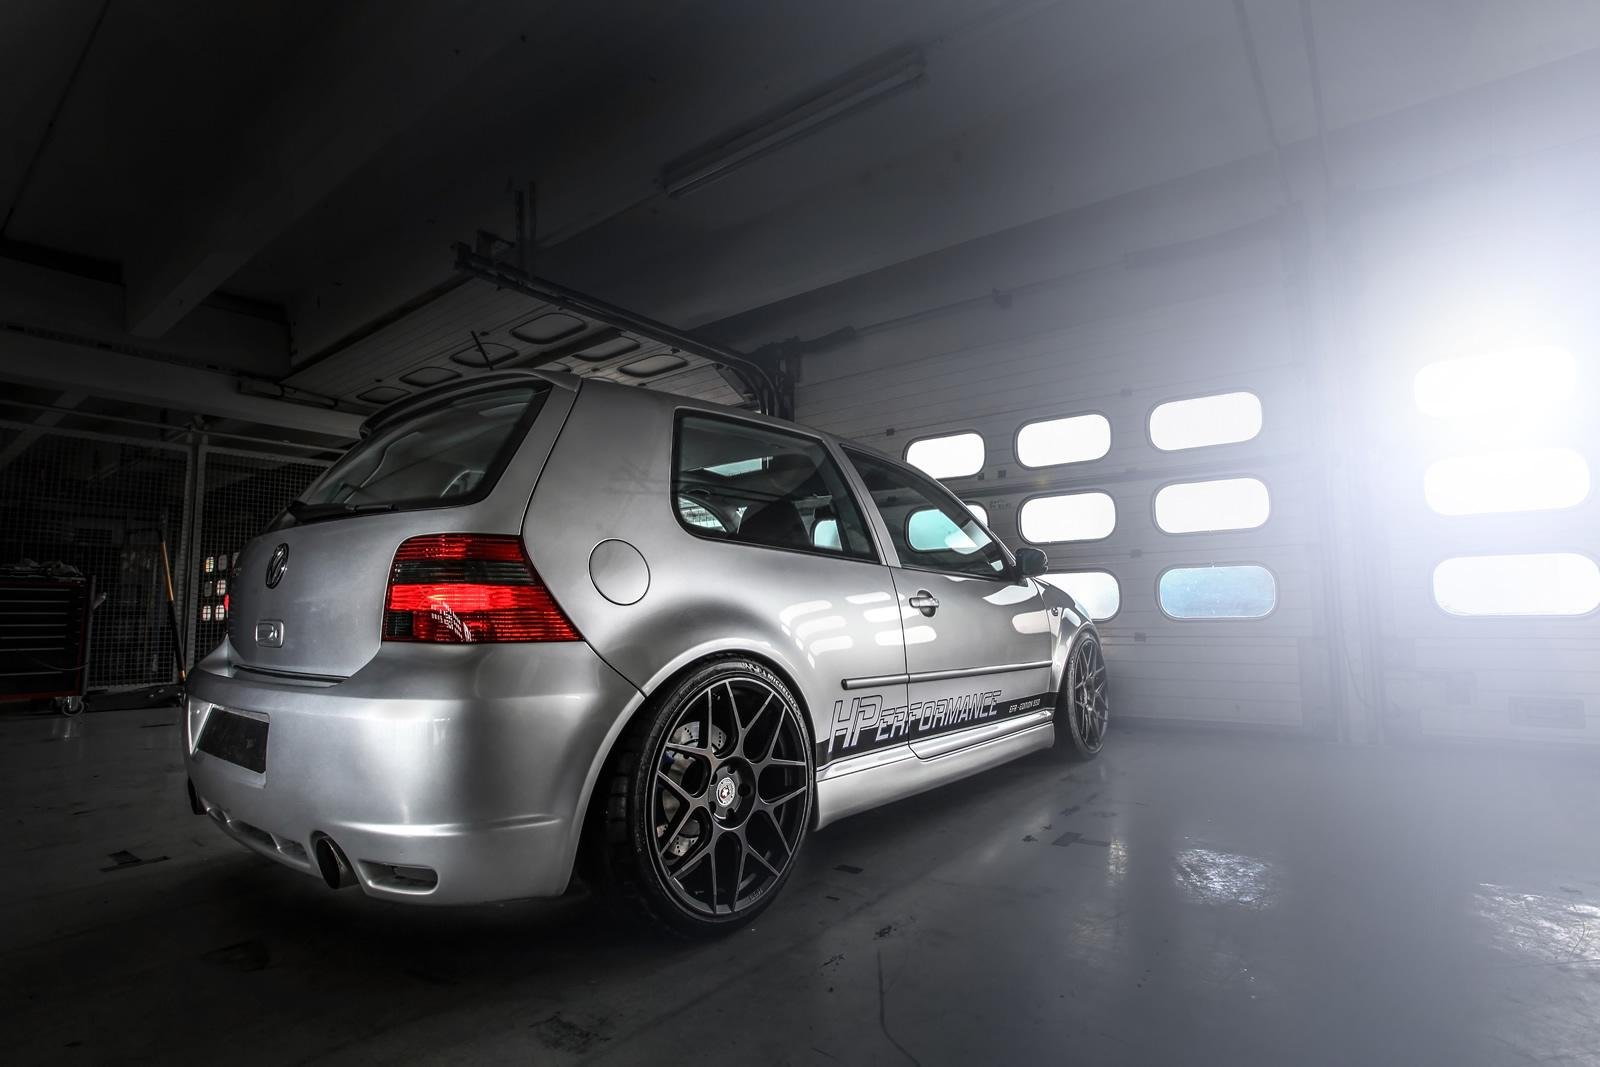 R32 Wallpapers 46 Wallpapers Adorable Wallpapers